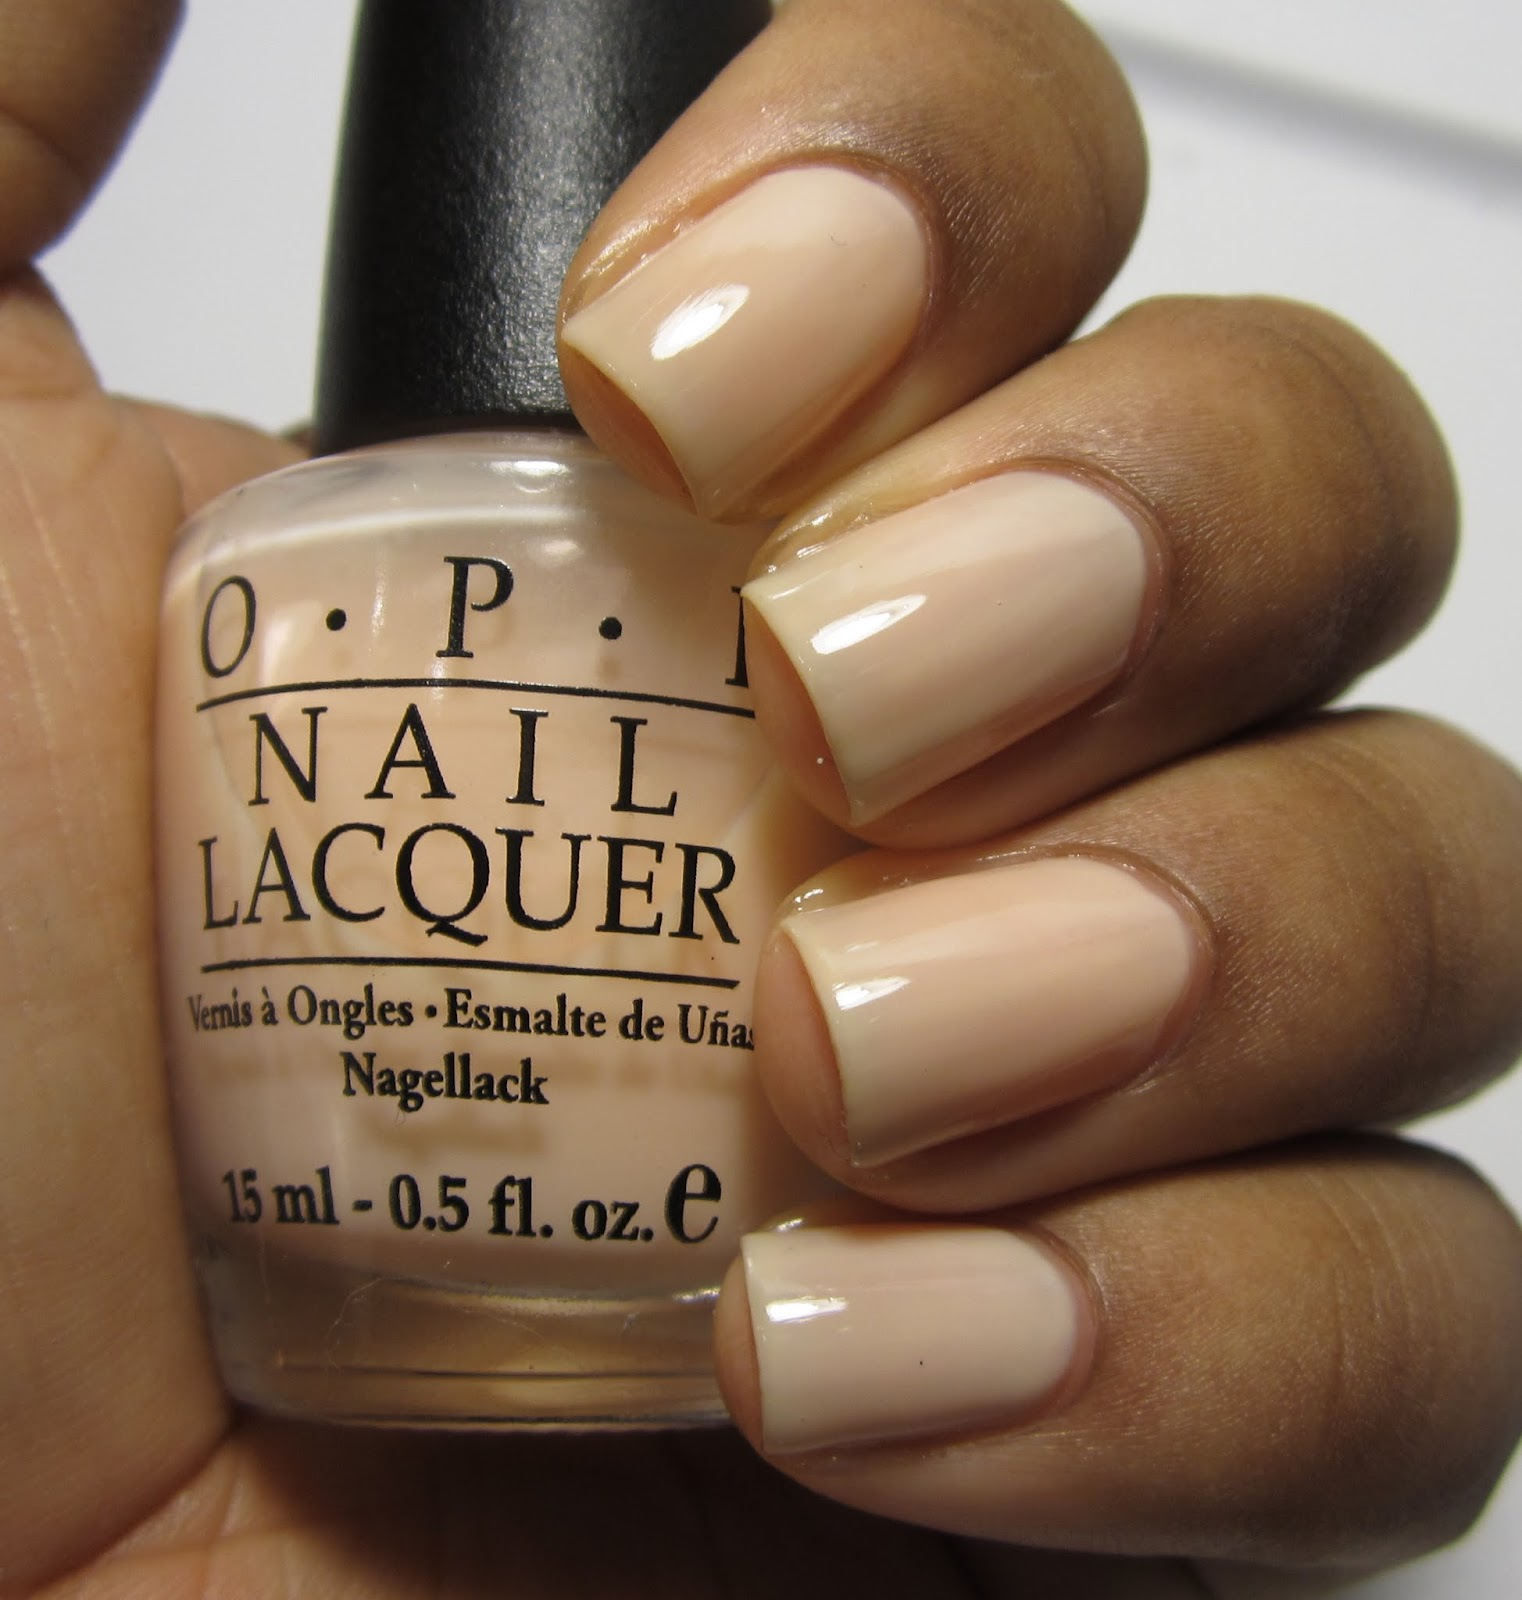 Coney Island Cotton Candy Opi Swatch